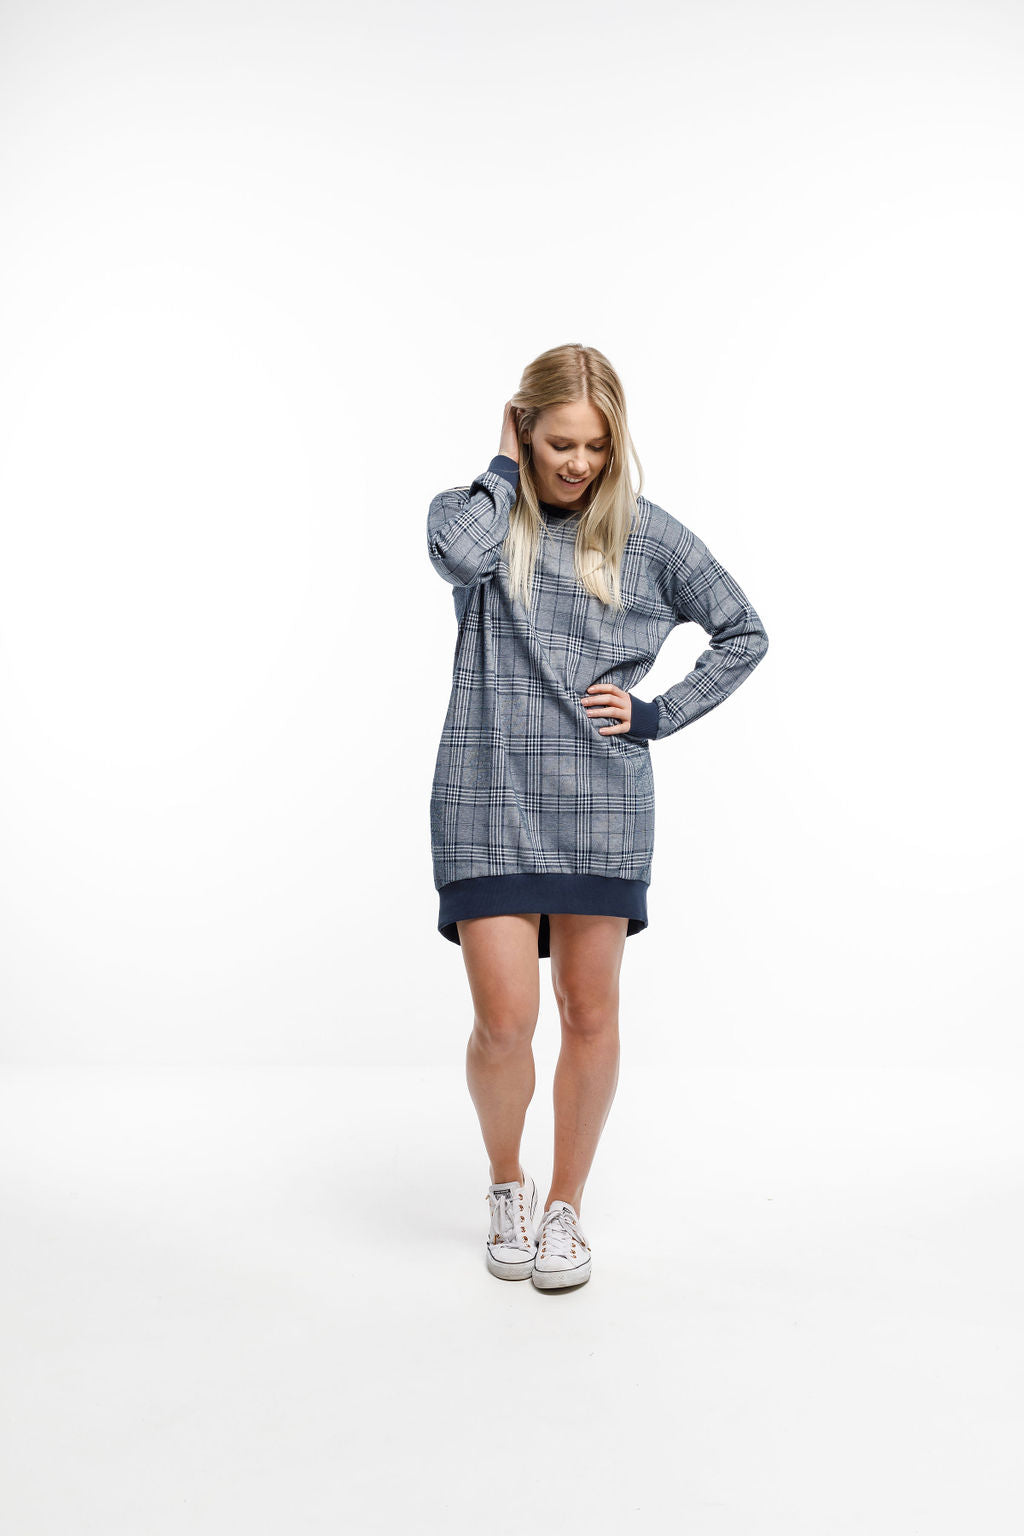 *COMFORT CLUB SPECIAL* POCKET SWEATER DRESS - Navy Plaid - 40% off